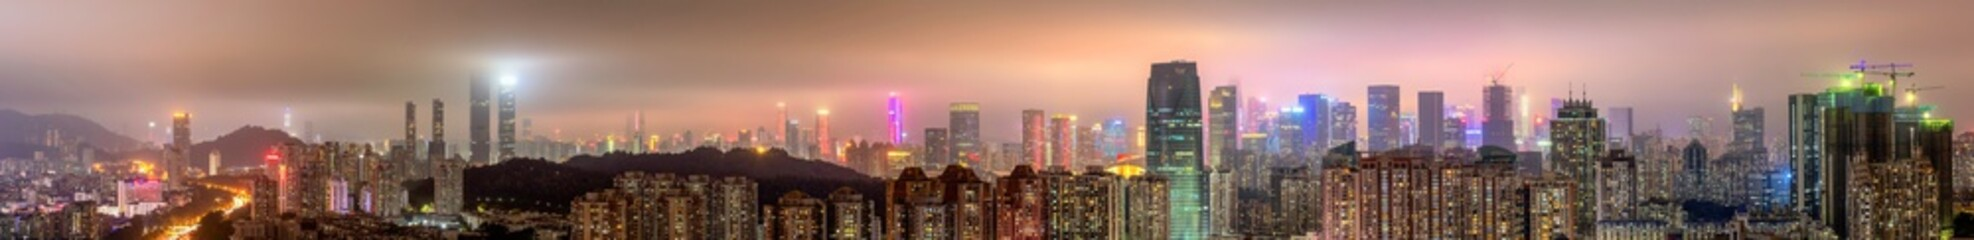 Panoramic View Of Illuminated Buildings Against Sky In City